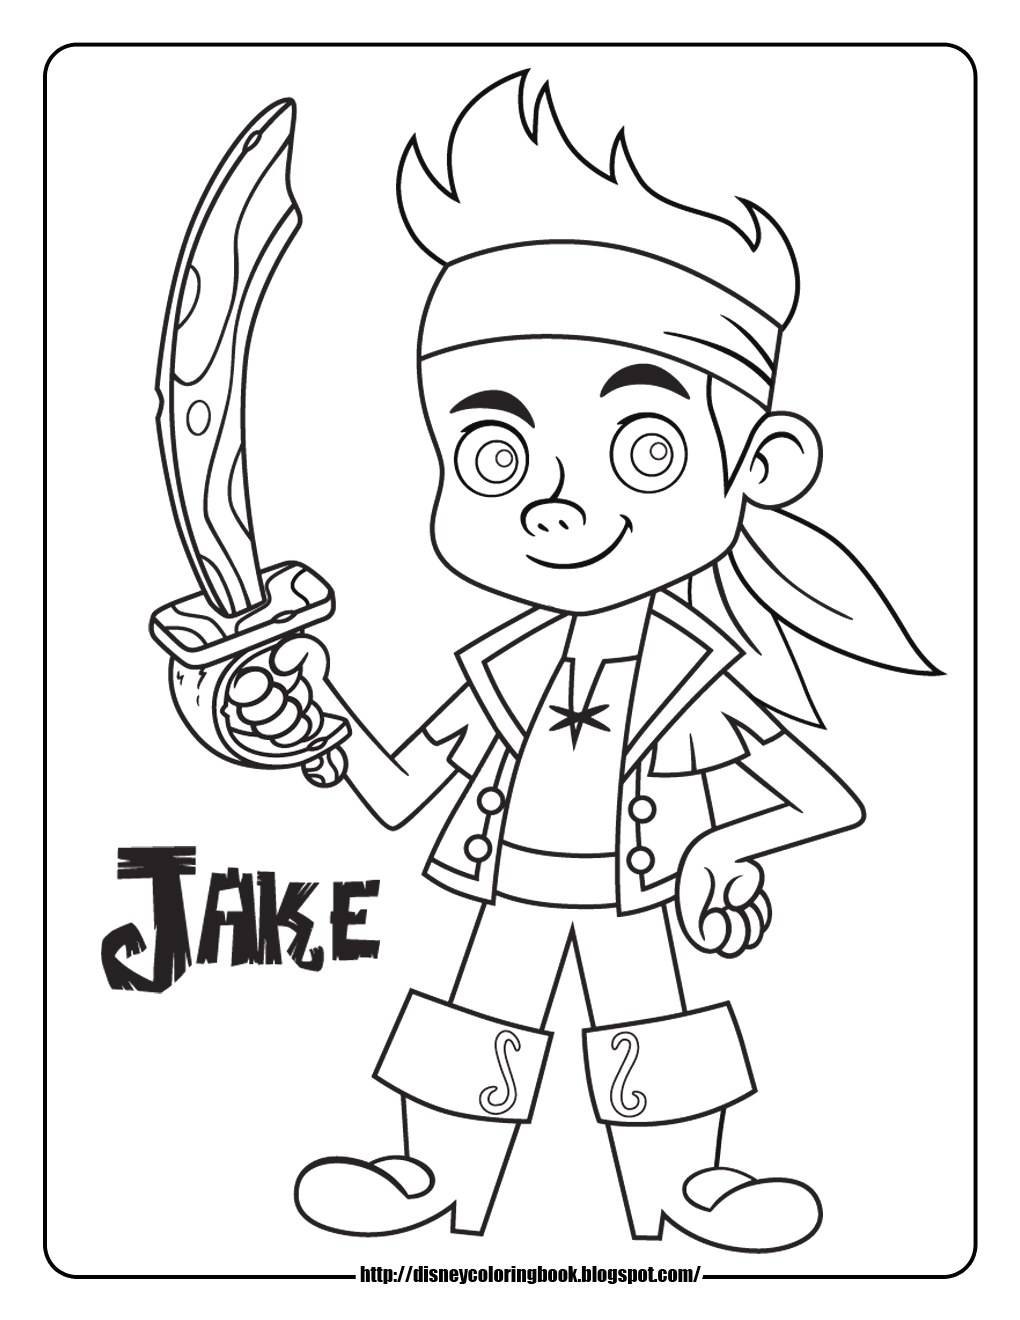 Disney Jake and the Neverland Pirates Coloring Pages Jake and the Neverland Pirates 1 Free Disney Coloring